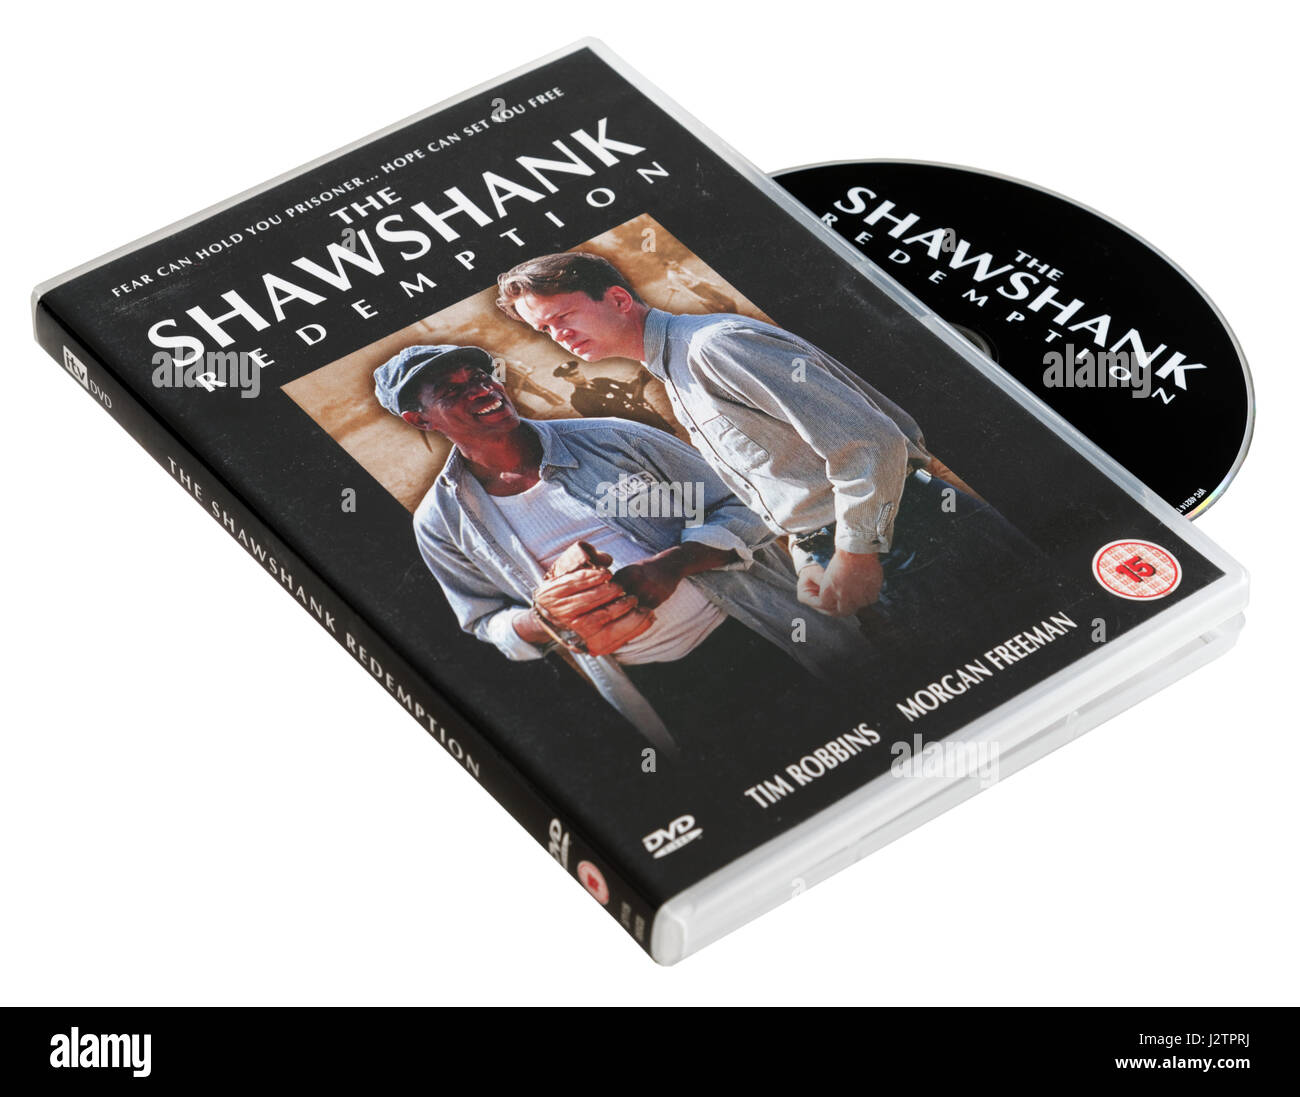 The Shawshank Redemption DVD - Stock Image